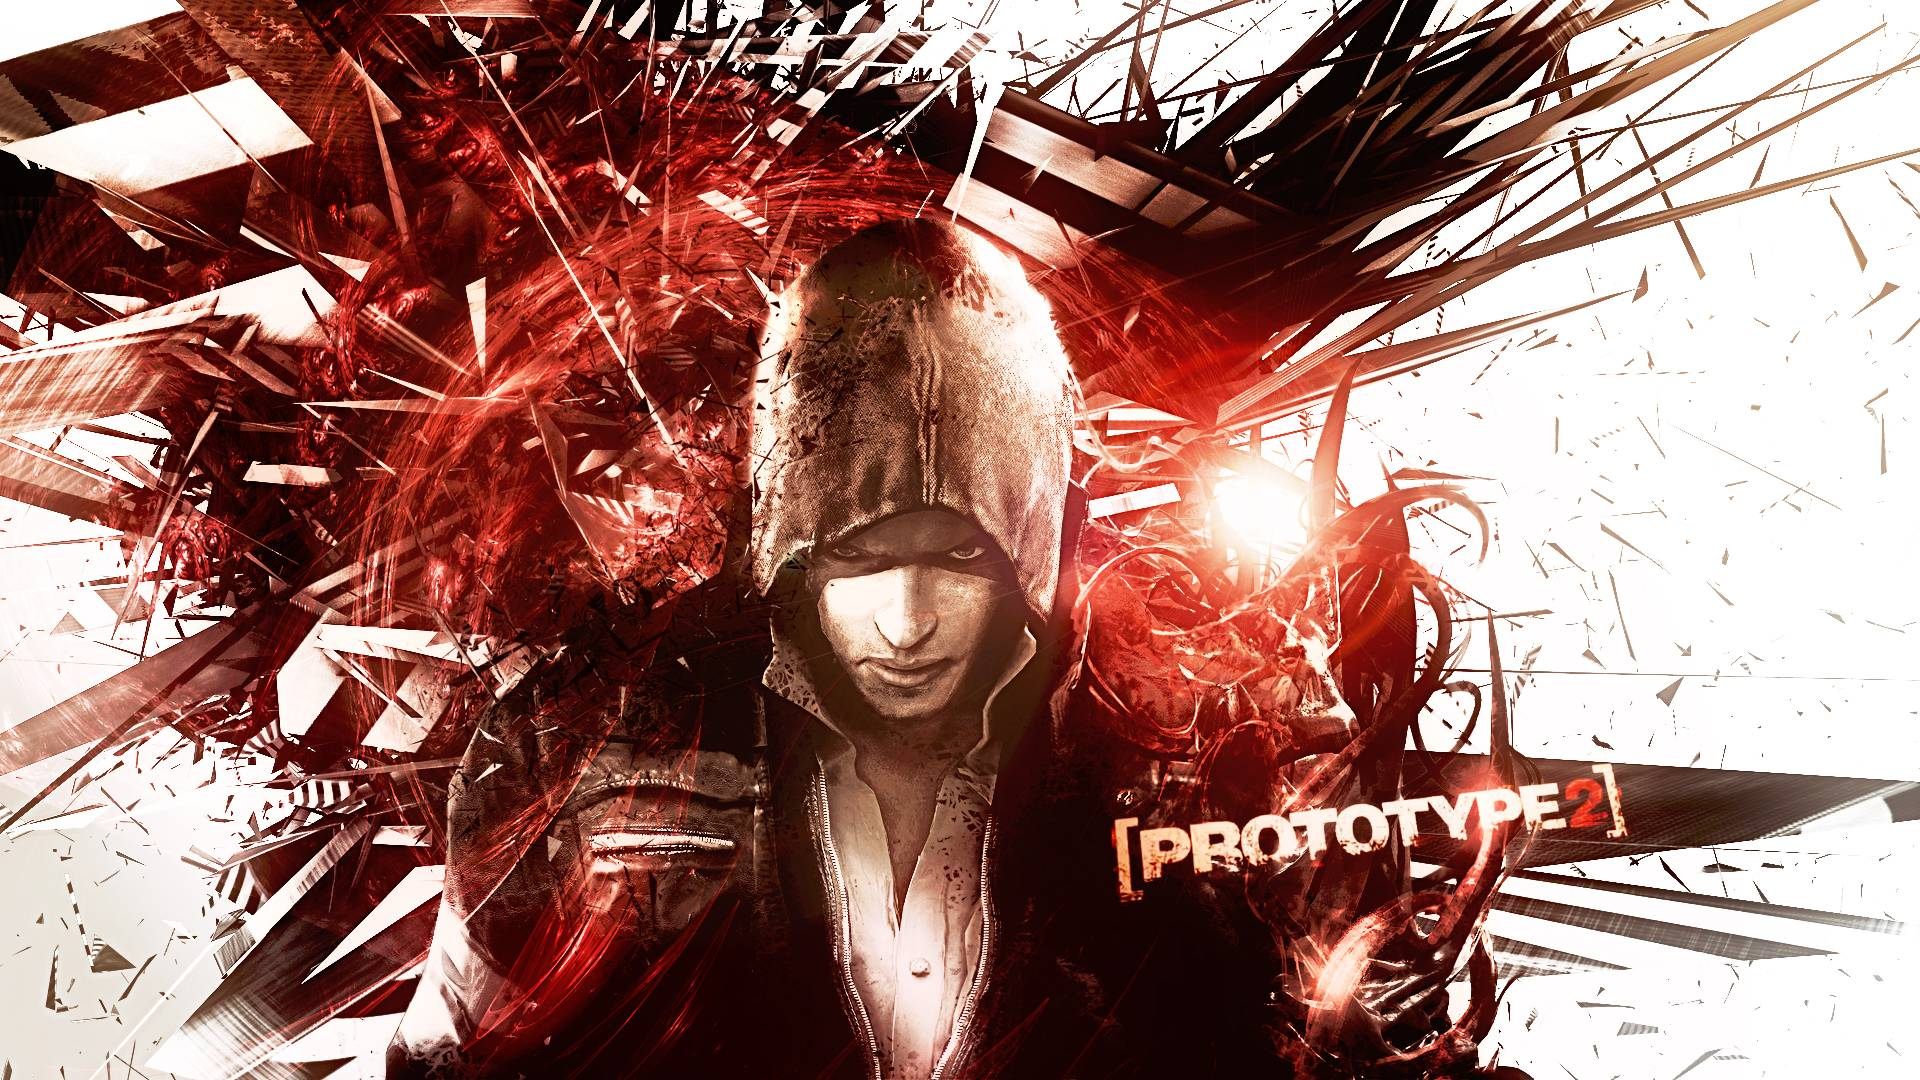 prototype 2 wallpapers